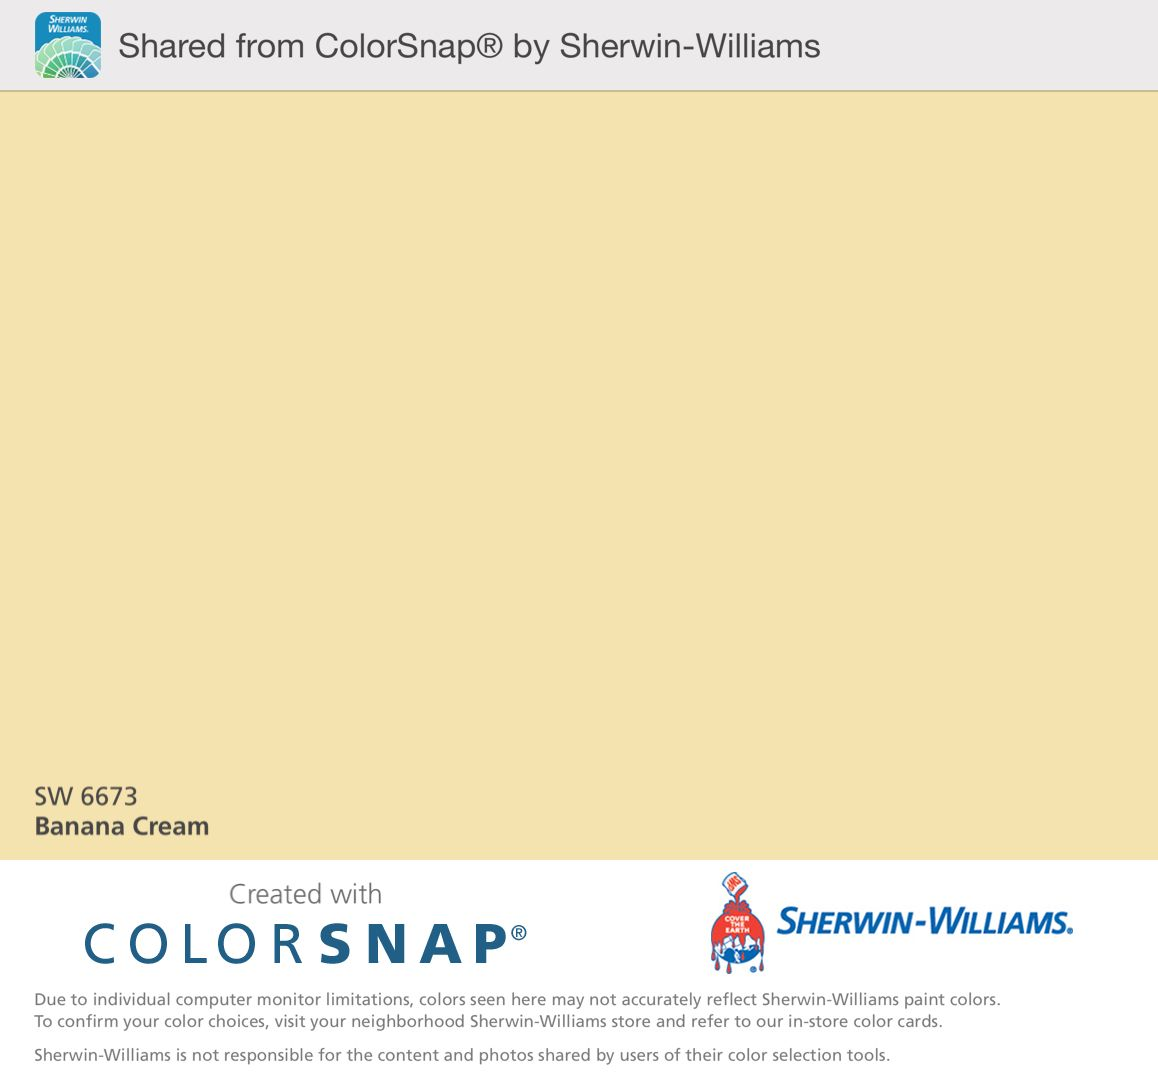 Banana Cream by Sherwin Williams-to paint inside kitchen ... on cvs locations, directbuy locations, john deere landscapes locations, fastsigns locations, forman mills locations, at&t locations, pepsico locations, meadwestvaco locations, benjamin moore locations, smithfield foods locations, dr pepper snapple locations, ohiohealth locations, simplexgrinnell locations, chevron locations, citi trends locations, cash america pawn locations, plains all american pipeline locations, enterprise rent-a-car locations, monsanto locations, sportsman's warehouse locations,